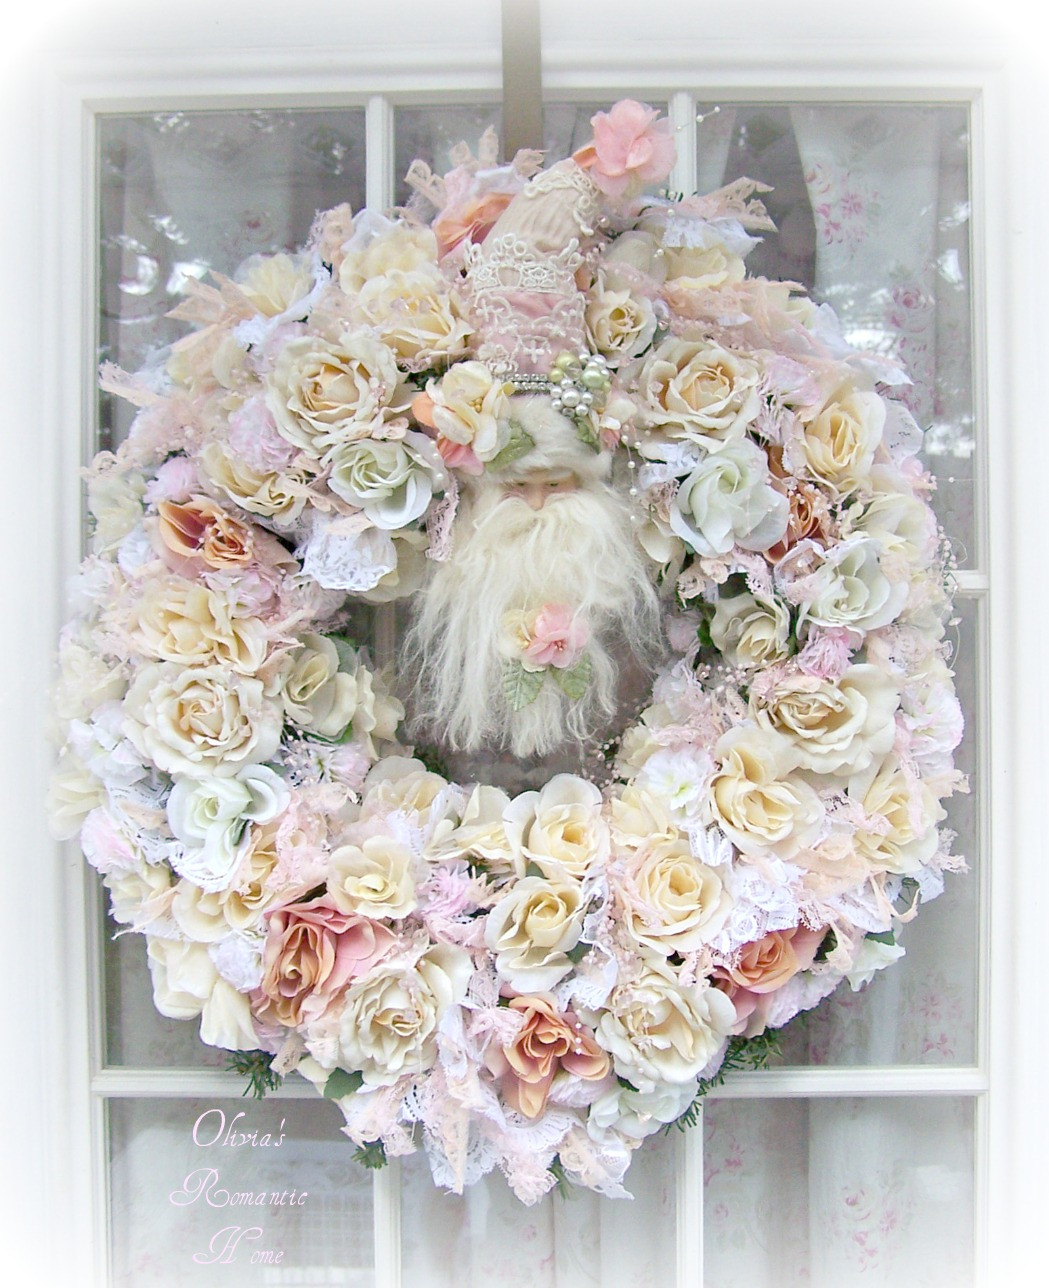 Best ideas about Shabby Chic Wreath . Save or Pin Olivia s Romantic Home Shabby Chic White Christmas Santa Now.